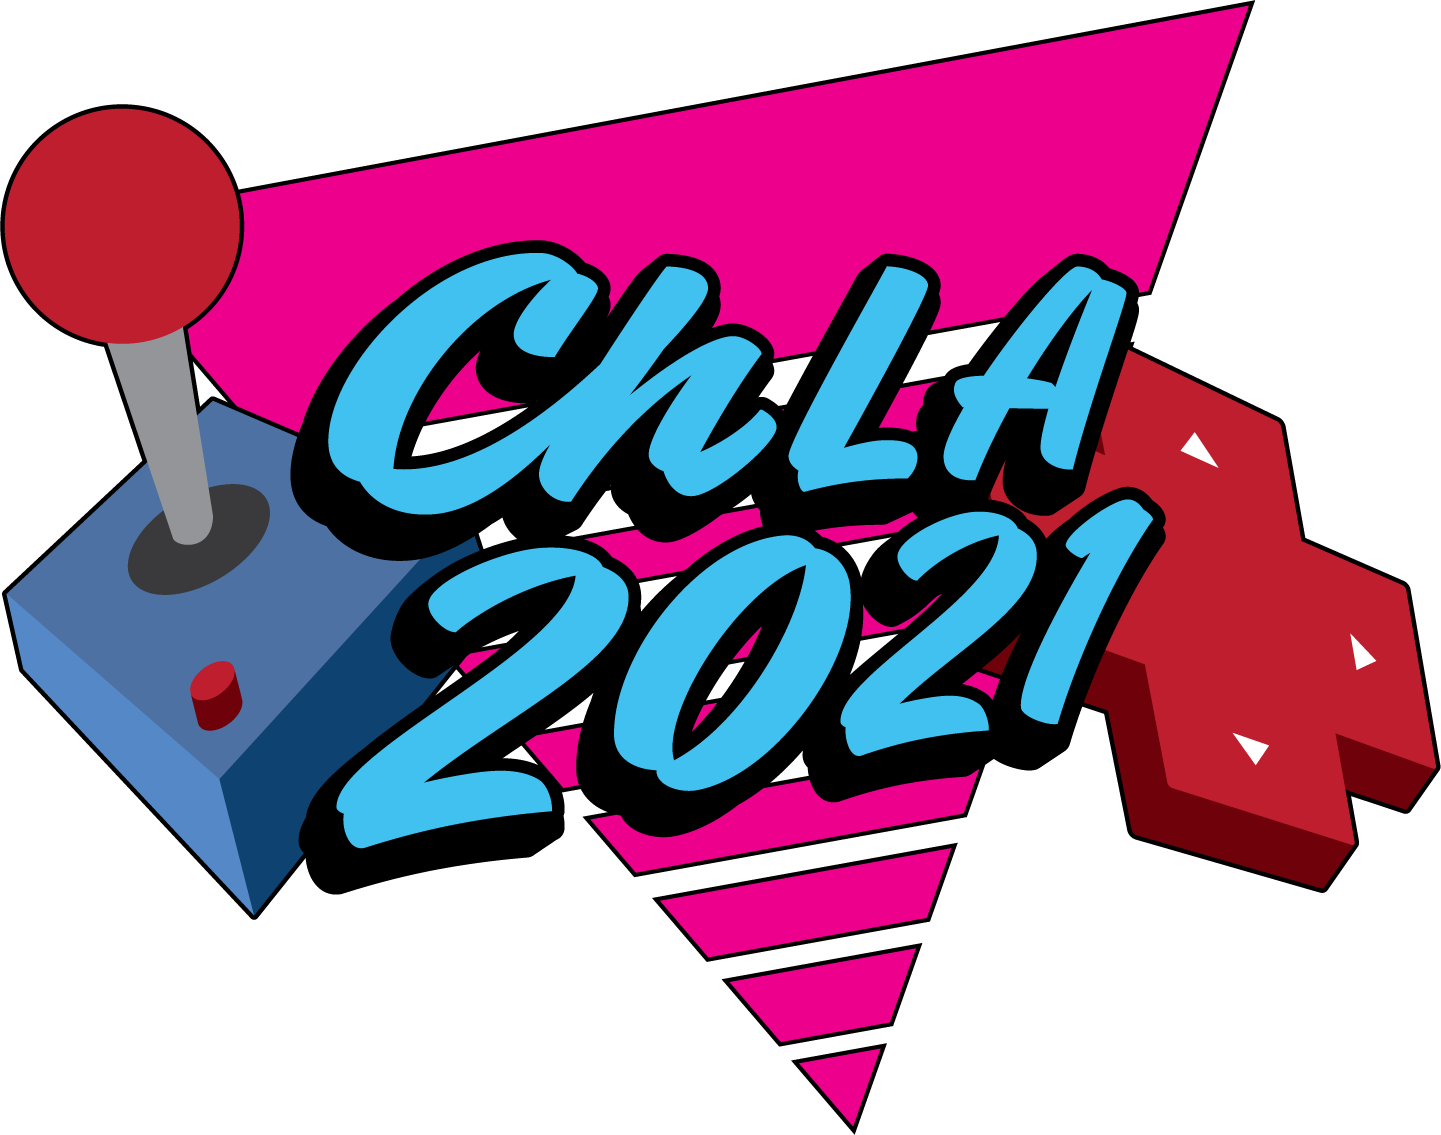 2021 ChLA conference logo for The Arcade